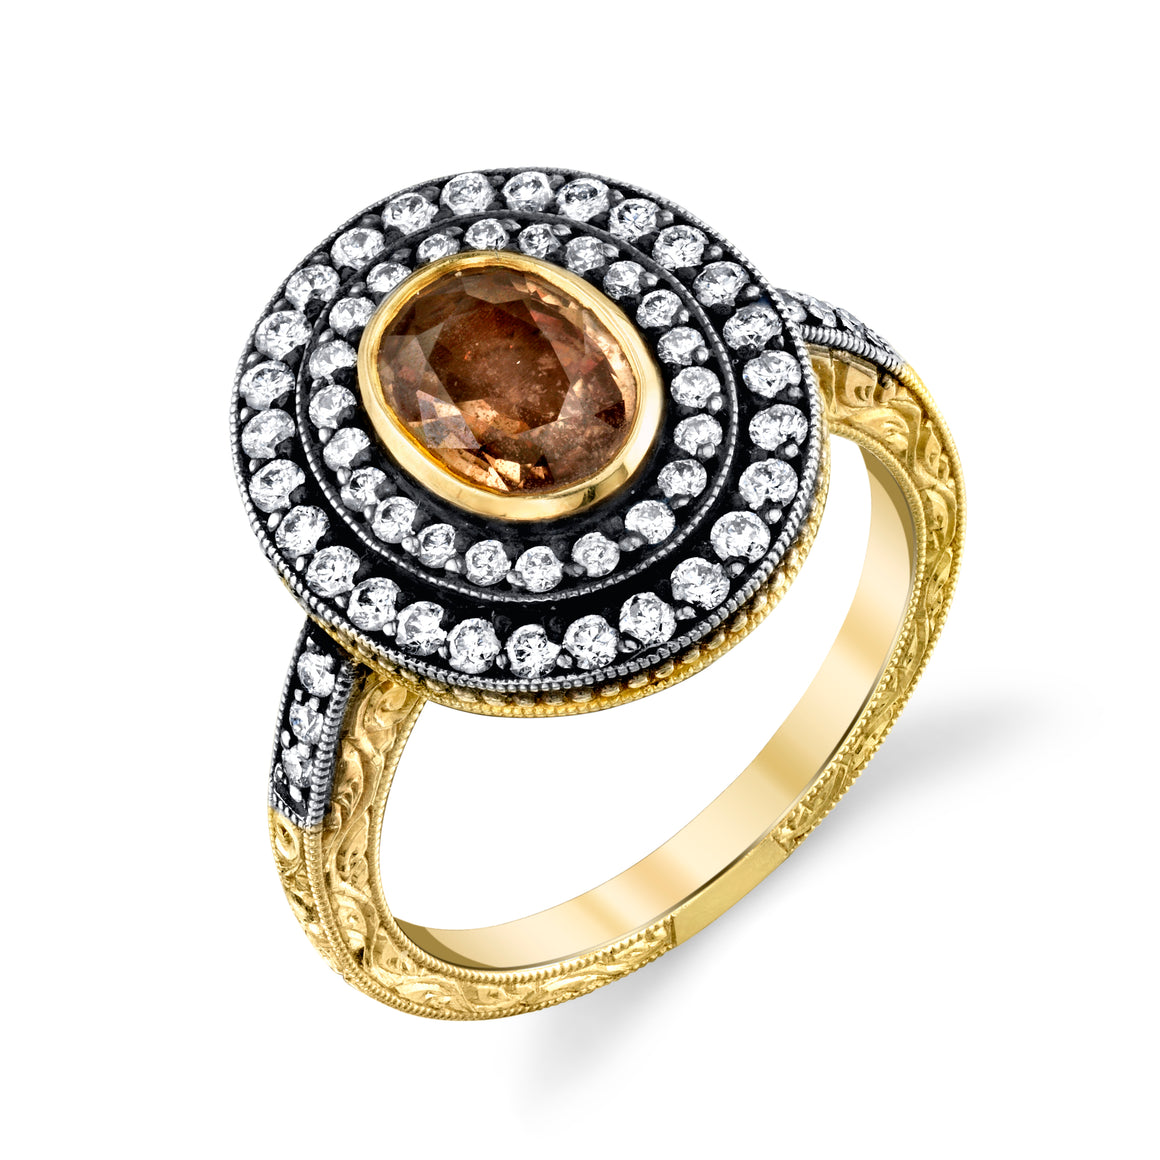 18k Yellow Gold, Brown Sapphire, and Diamond Hand Engraved Ring by Lord Jewelry - Talisman Collection Fine Jewelers